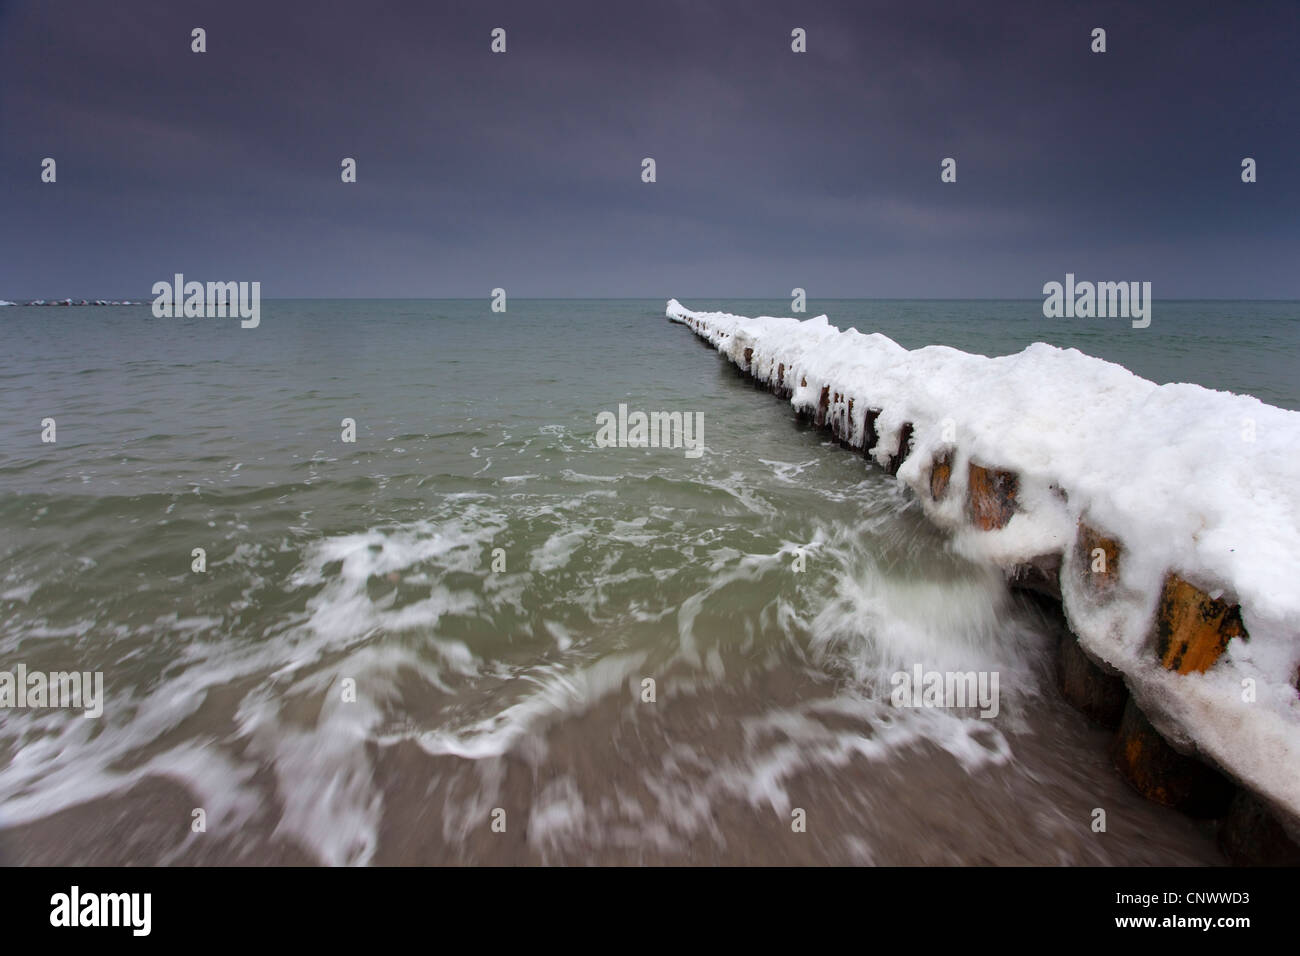 snow covered spur dike, Germany, Mecklenburg-Western Pomerania, Wustrow, Darss - Stock Image